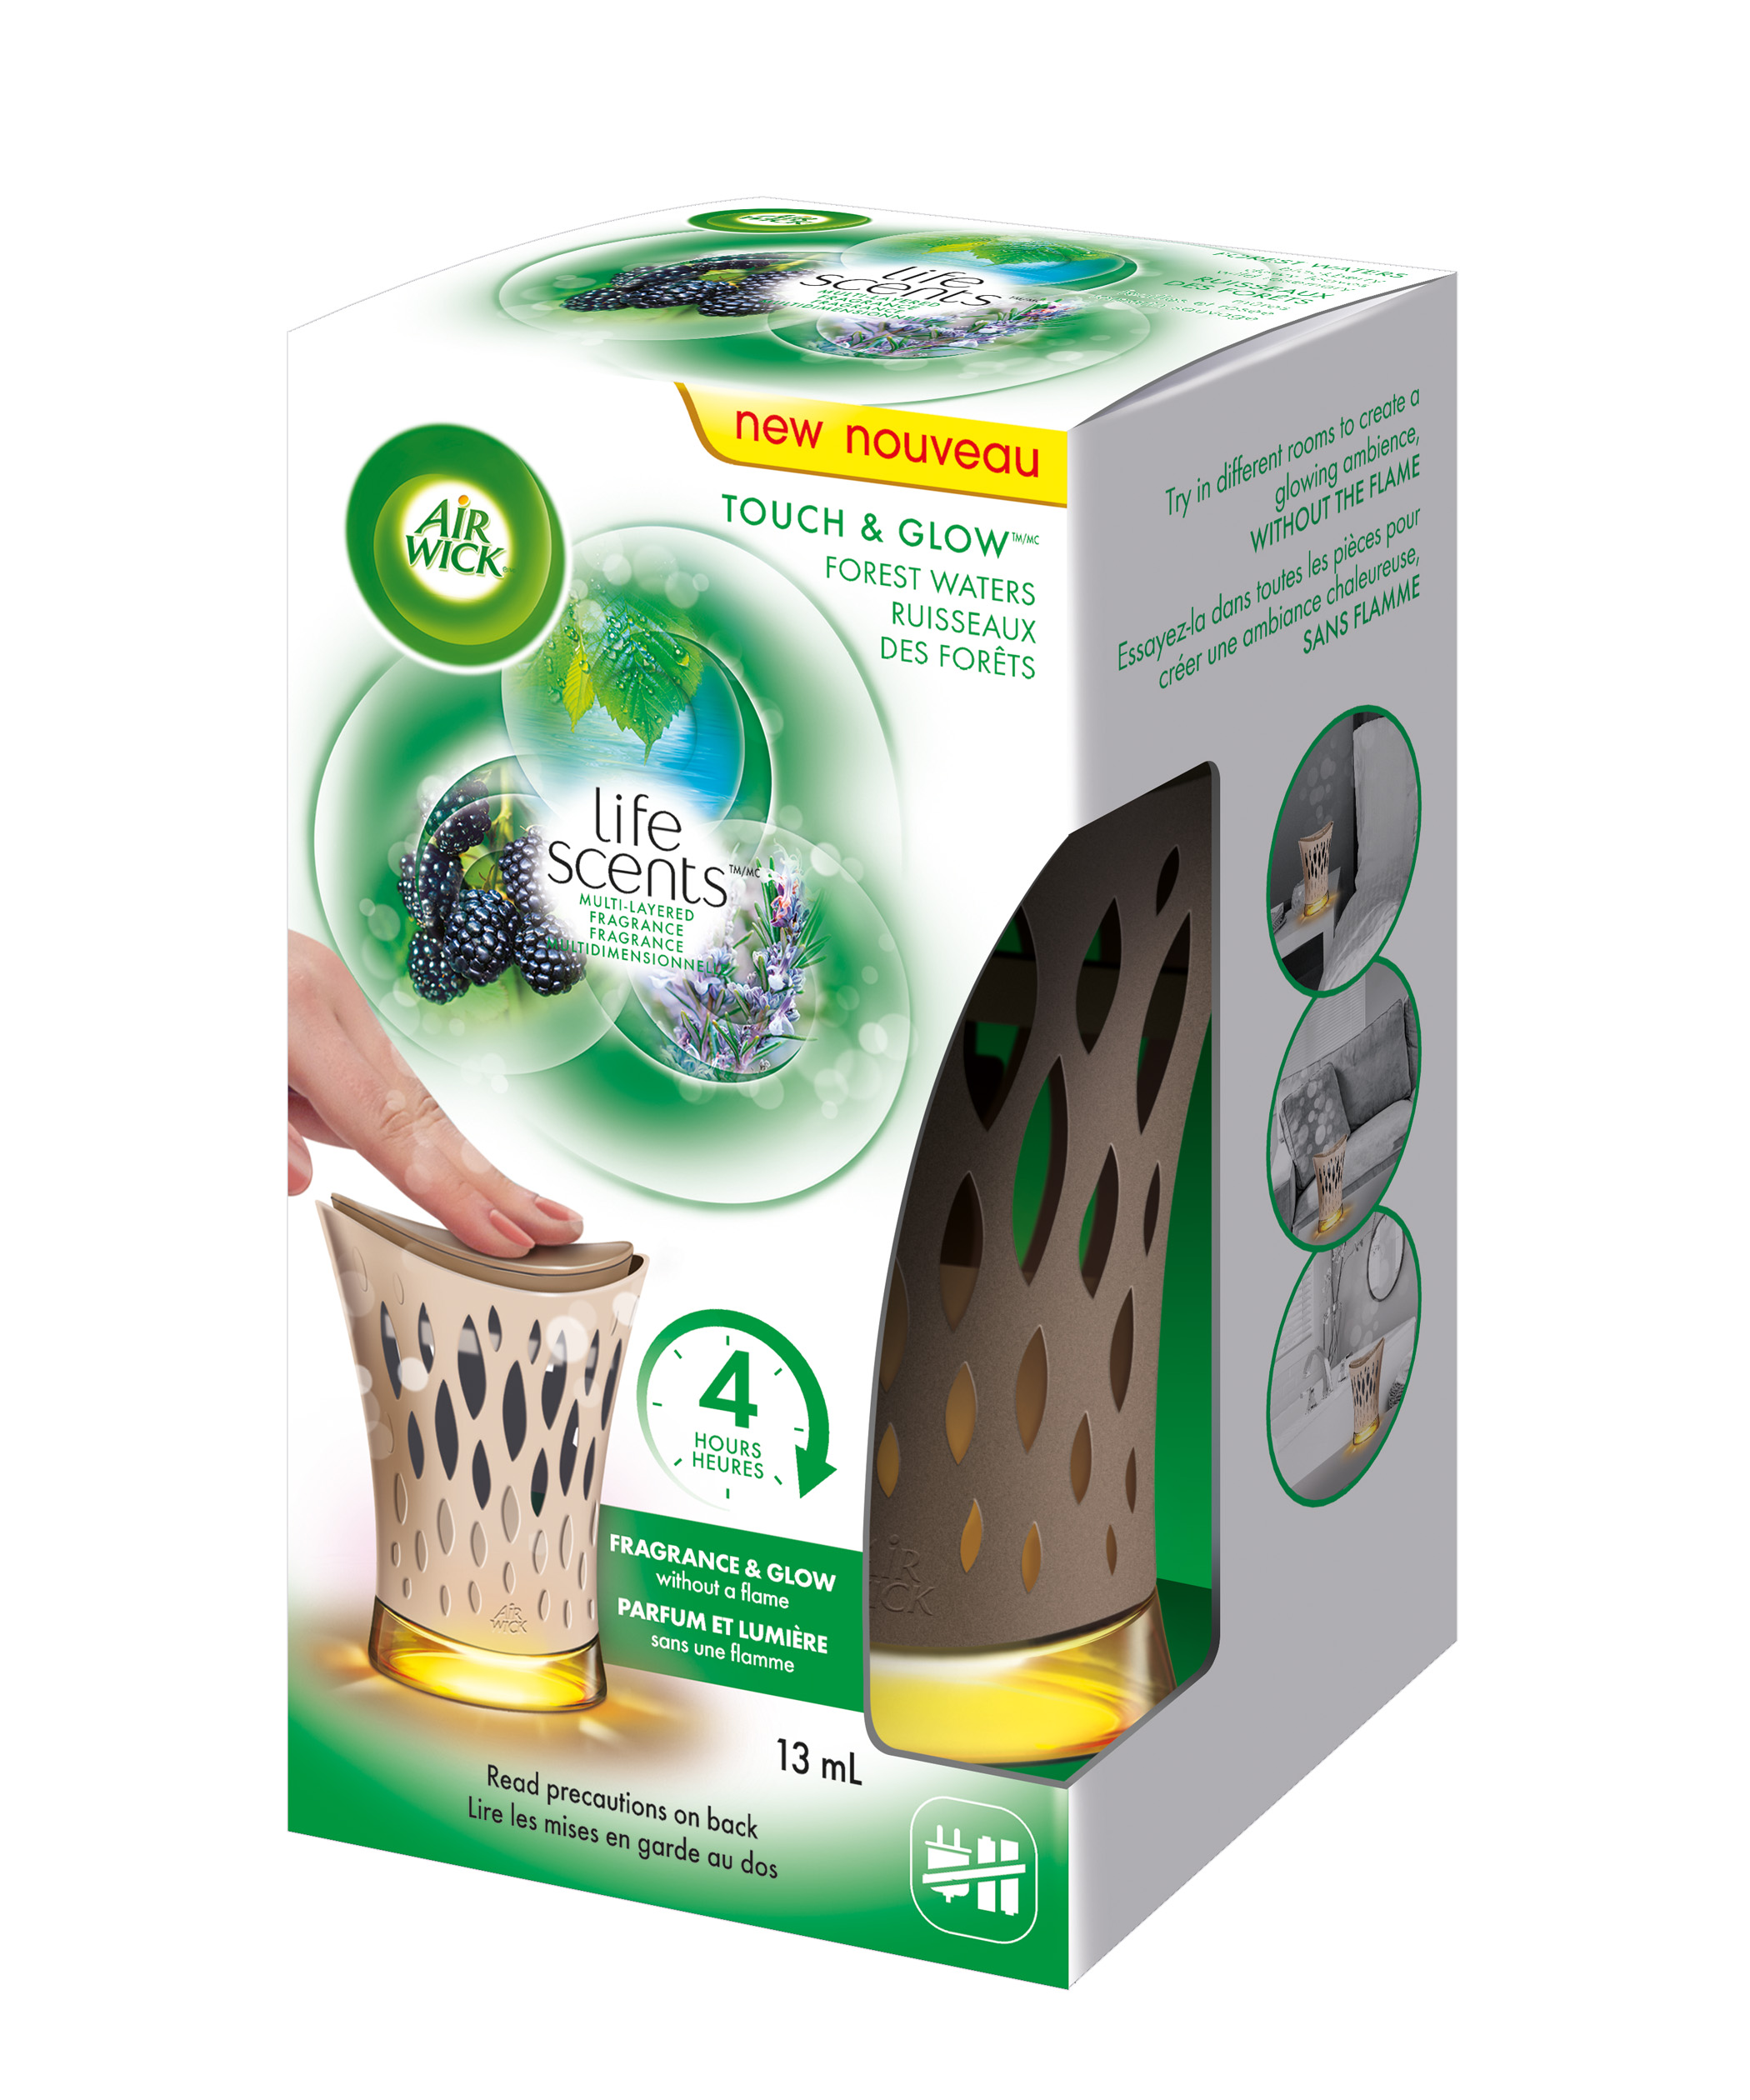 AIR WICK Touch  Glow Life Scents  Forest Waters Canada Photo